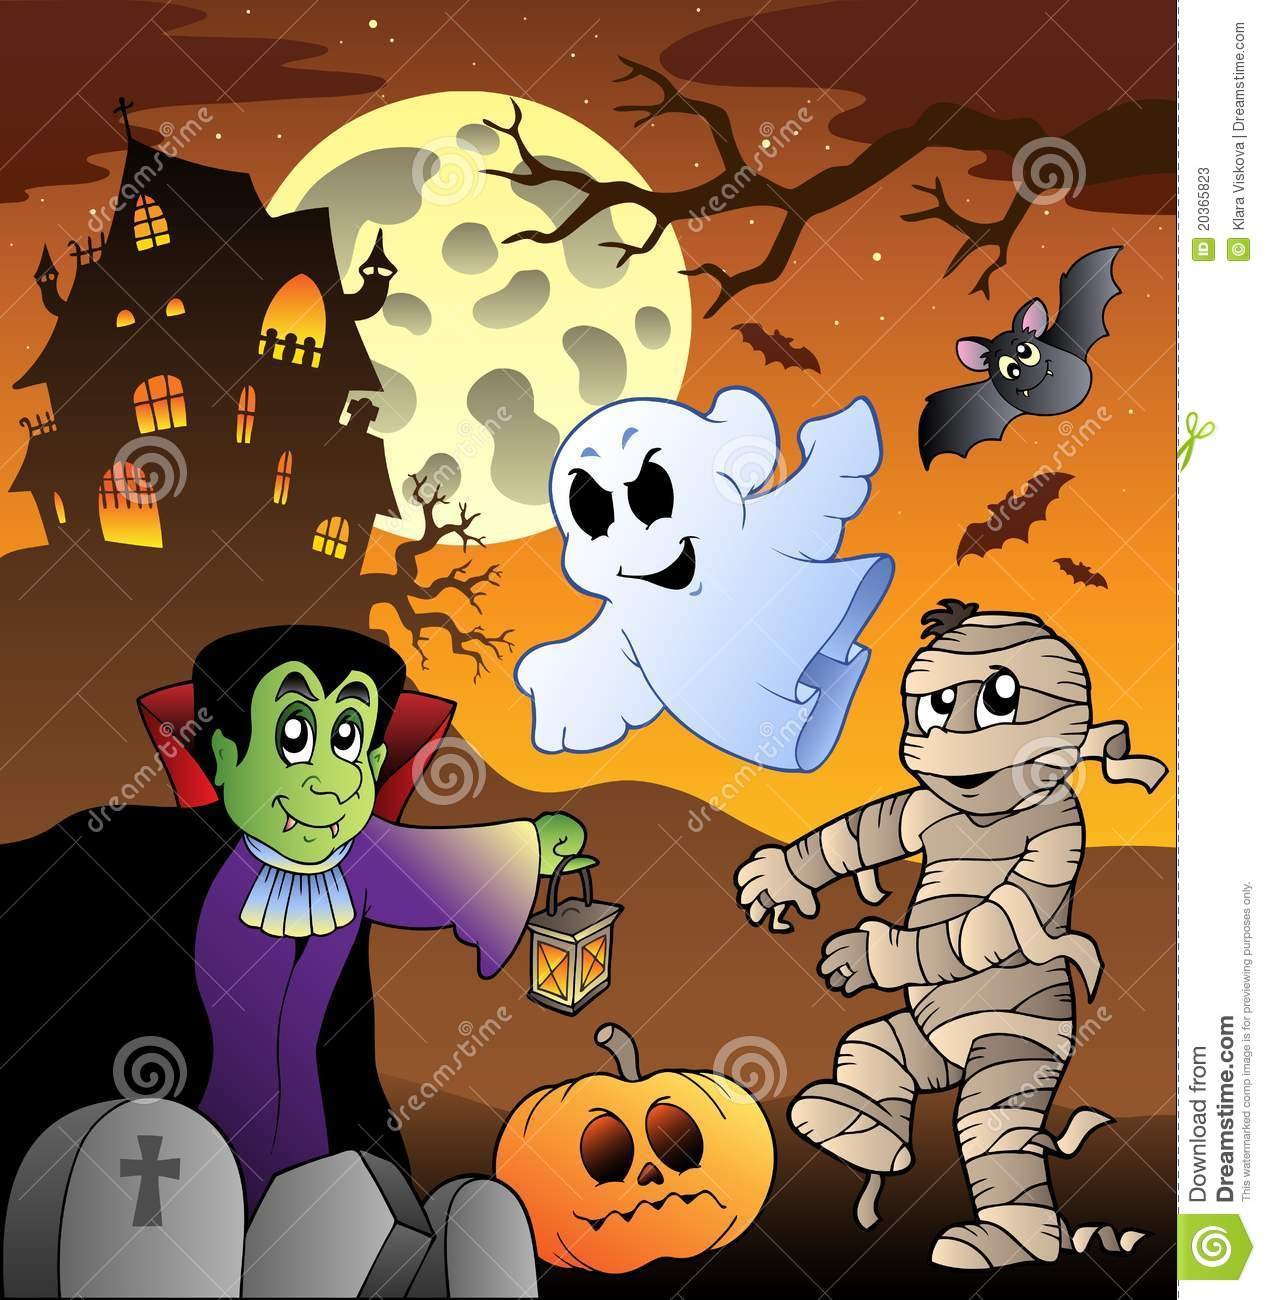 Haunted house images cartoon